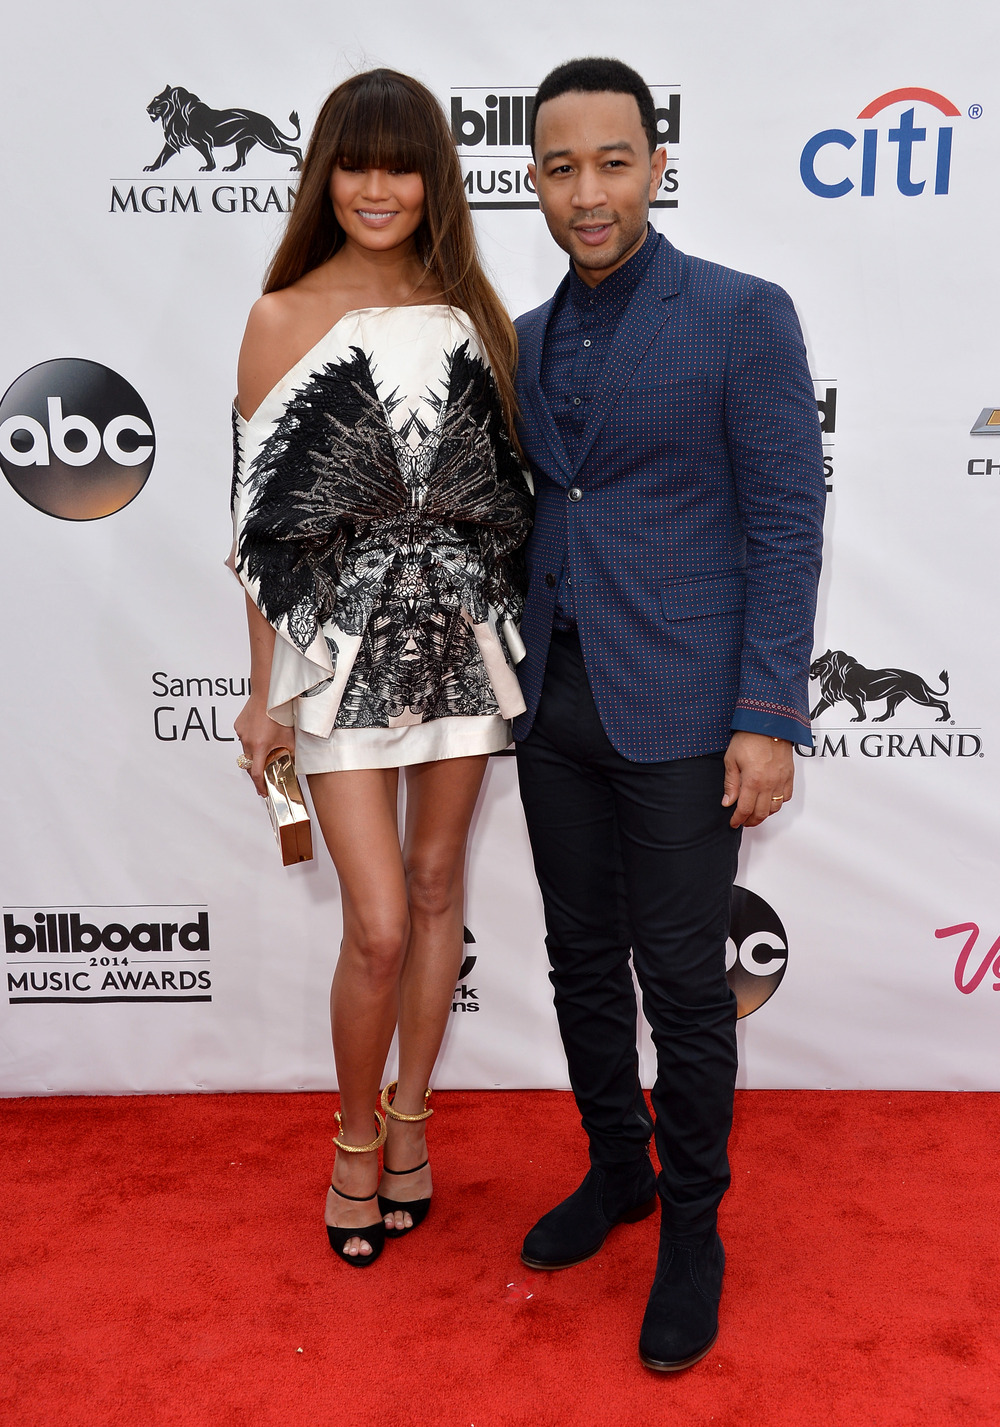 When Will Chrissy Teigen and John Legend Have Kids? She Says…